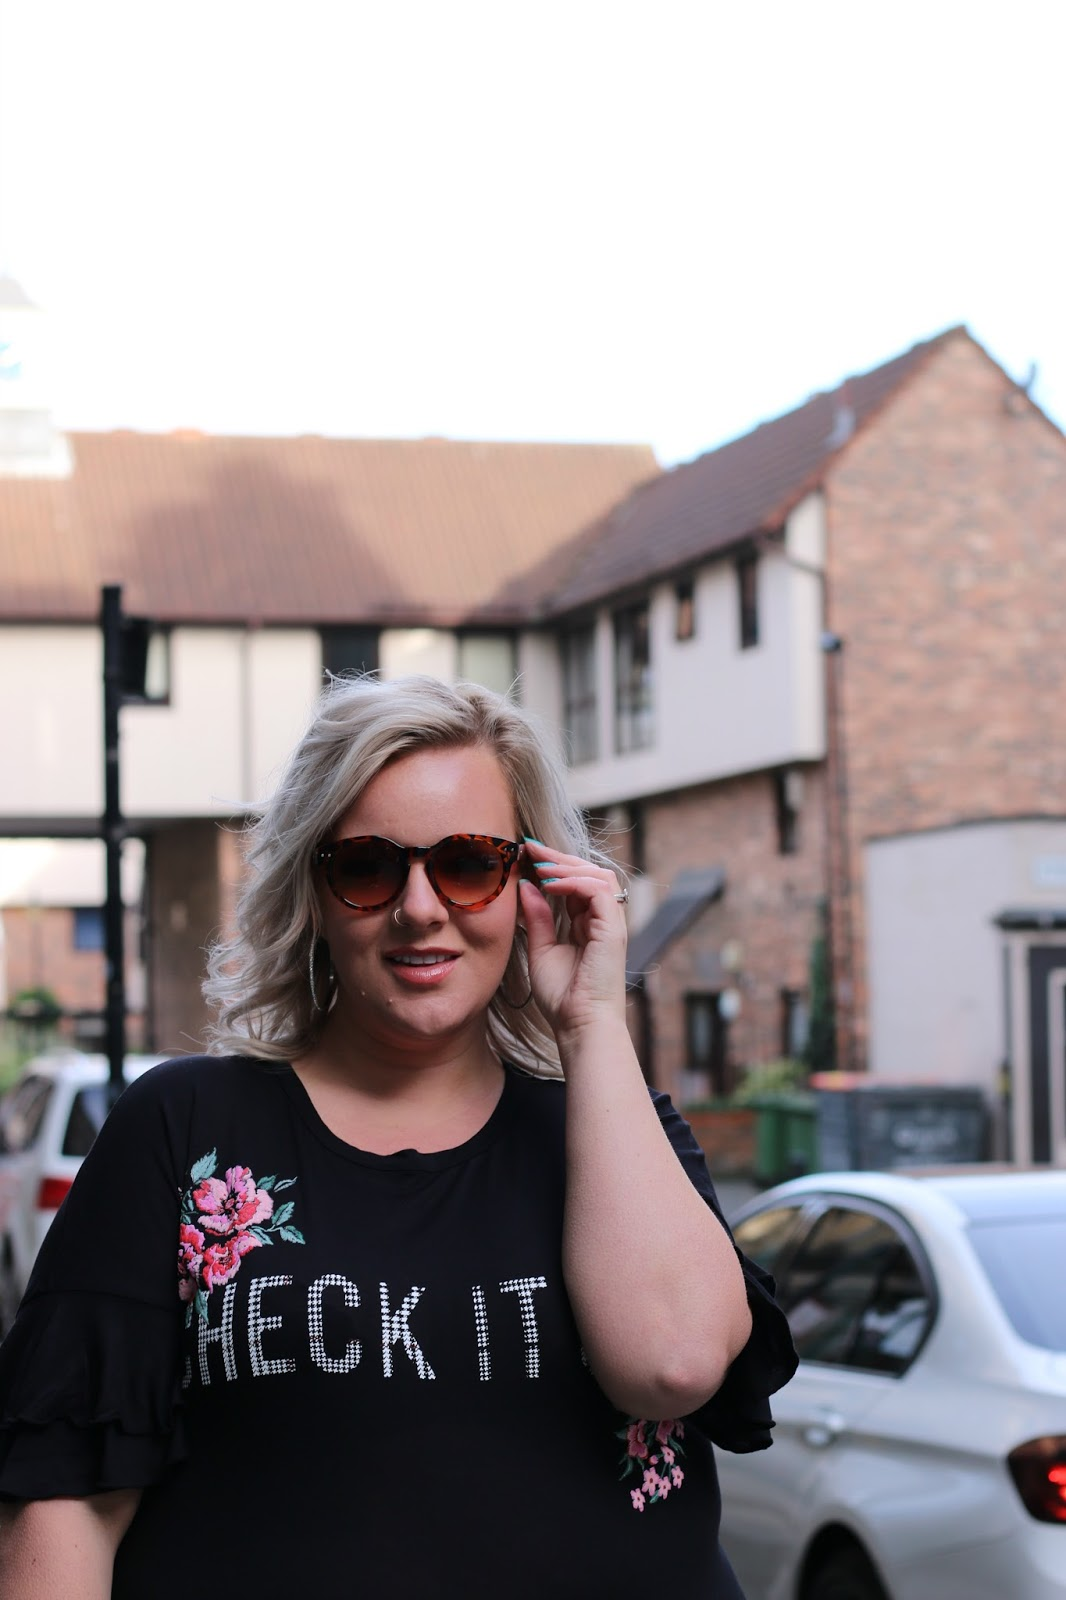 Putting Yourself First & Making Unselfish Selfish Decisions, wellbeing and fashion inspiration post by UK Plus Size Blogger WhatLauraLoves